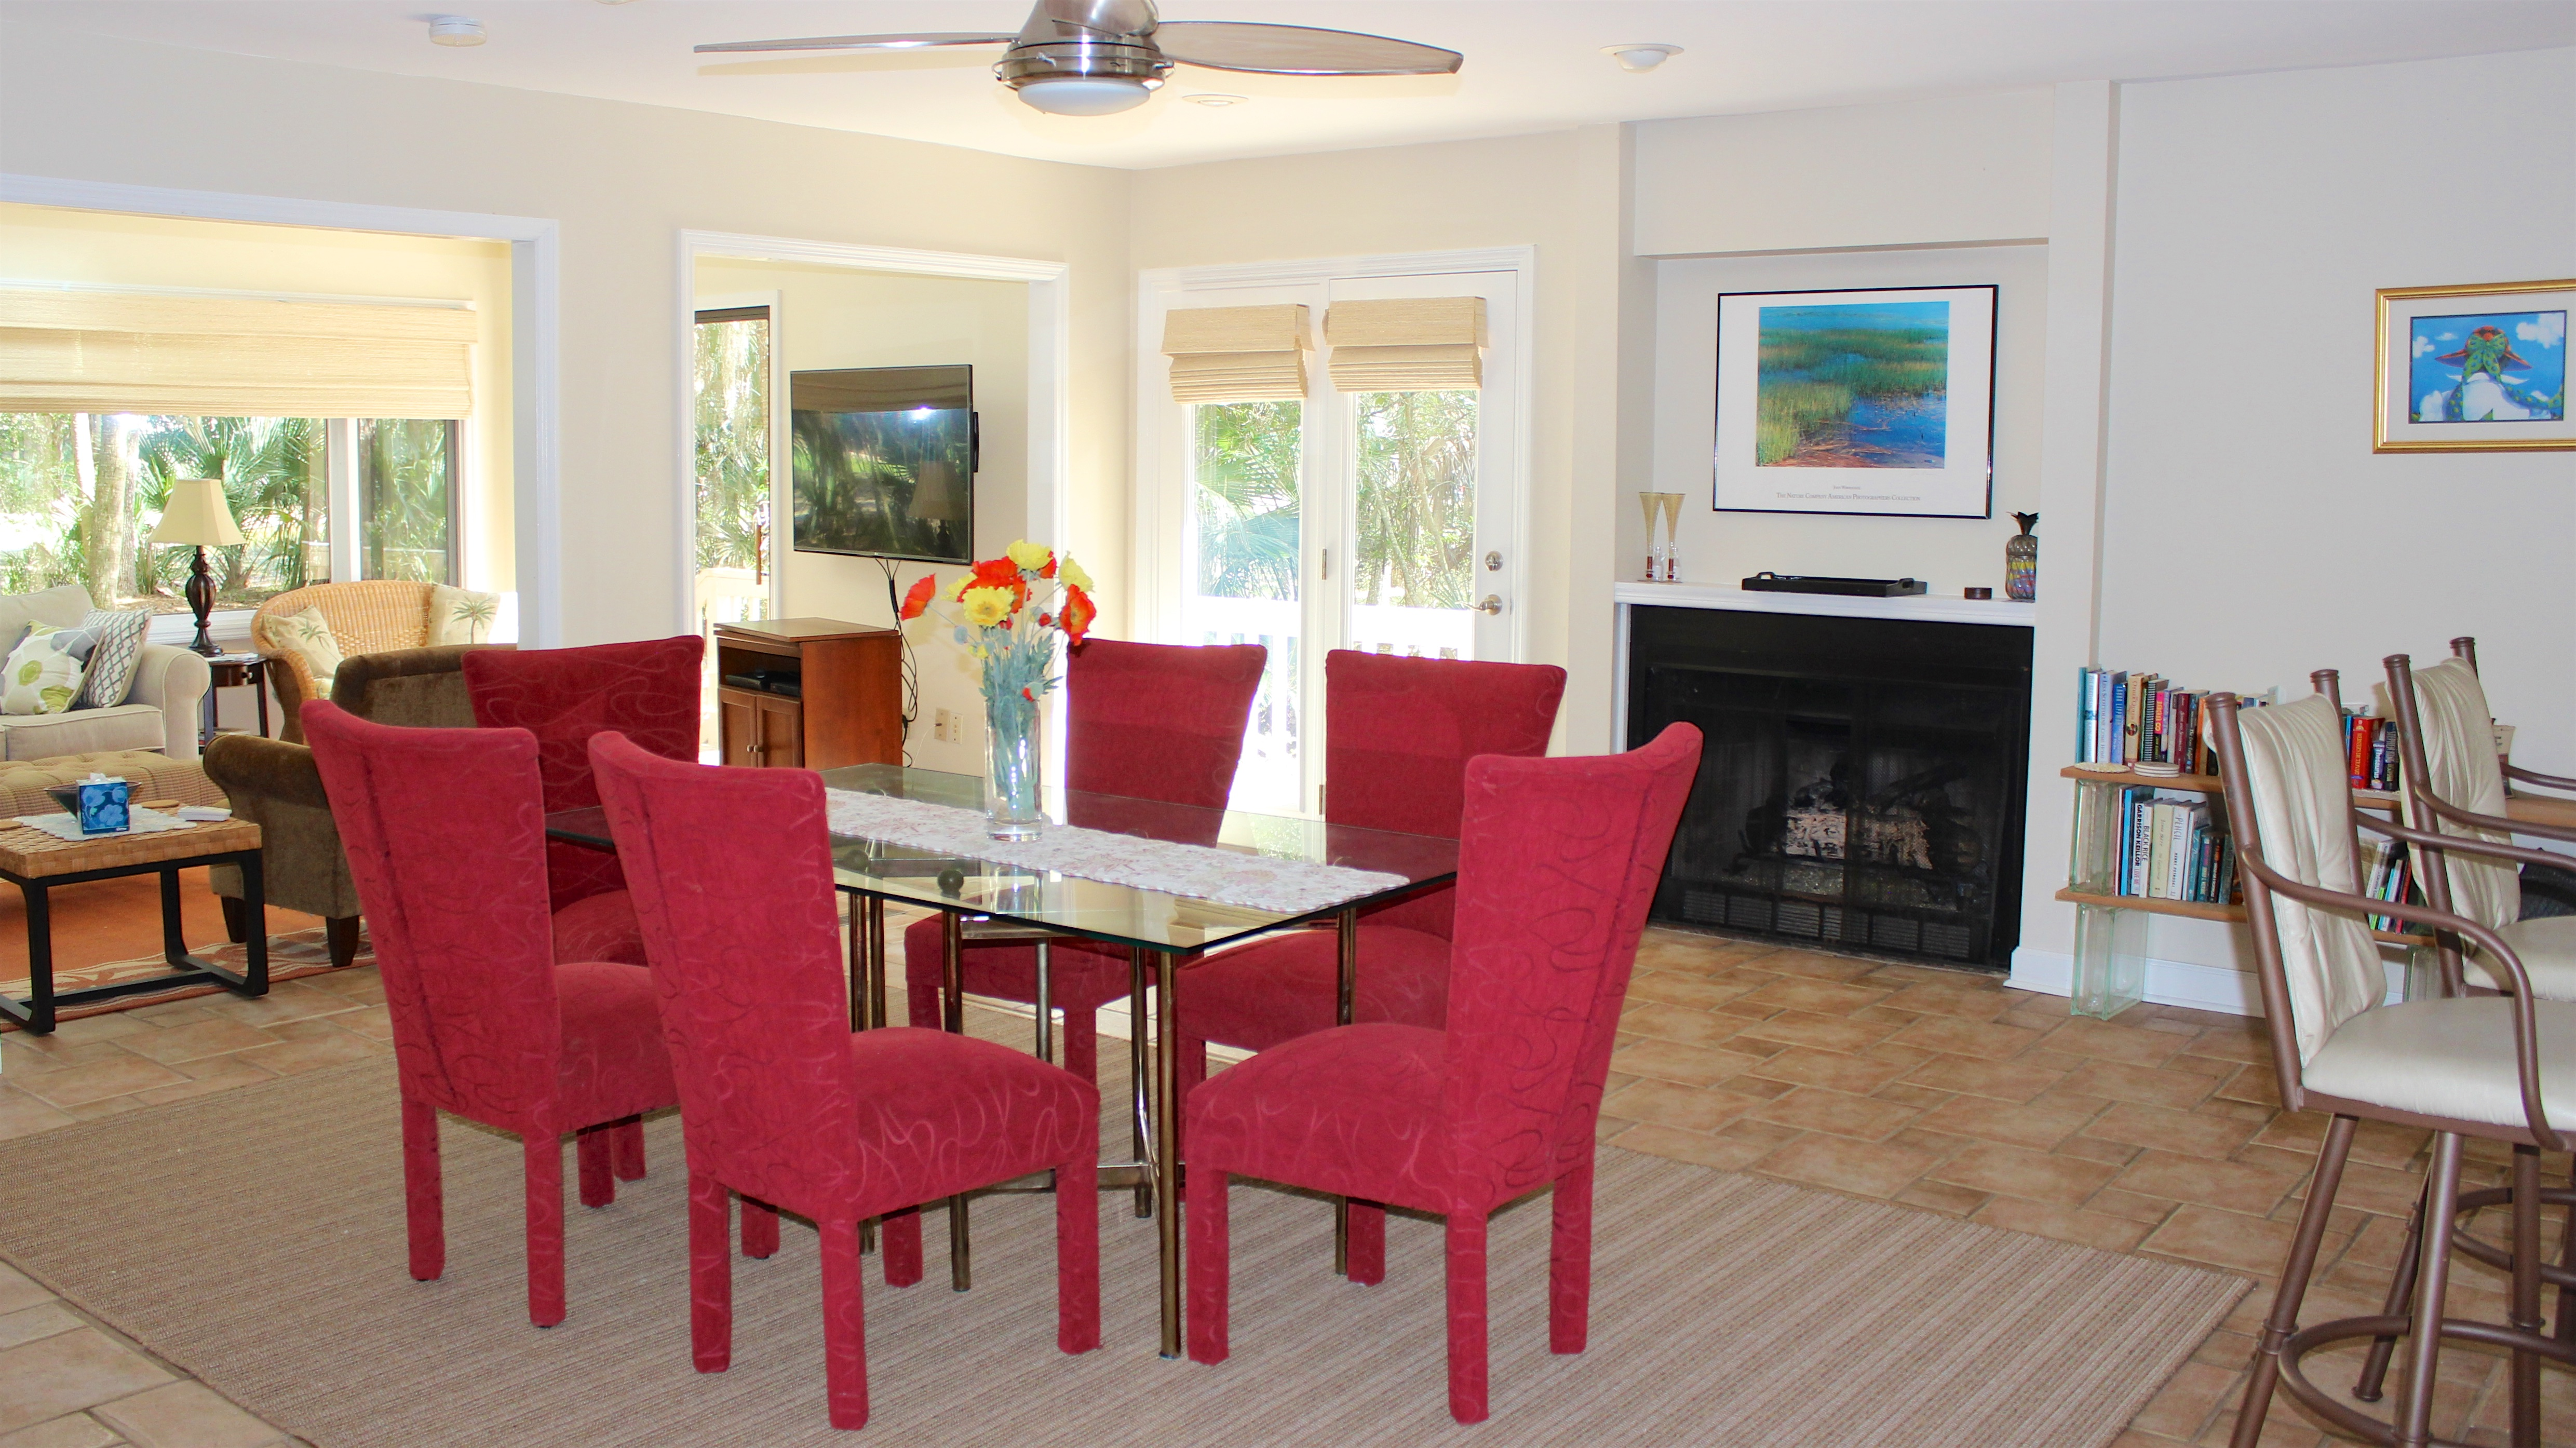 The open floor plan offers plenty of space for everyone to spread out.